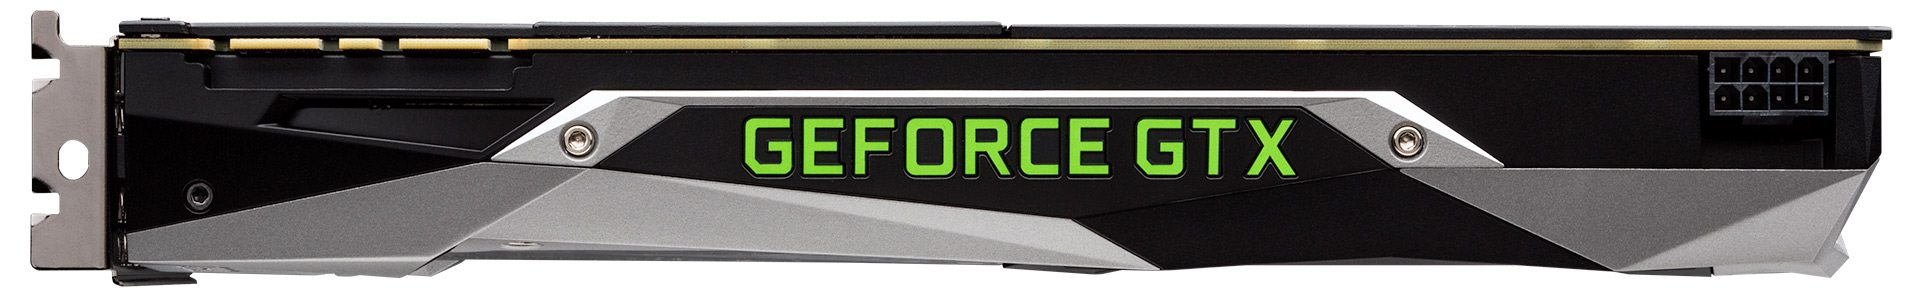 NVIDIA GeForce GTX 1080 Performance Review: Pascal, The New King